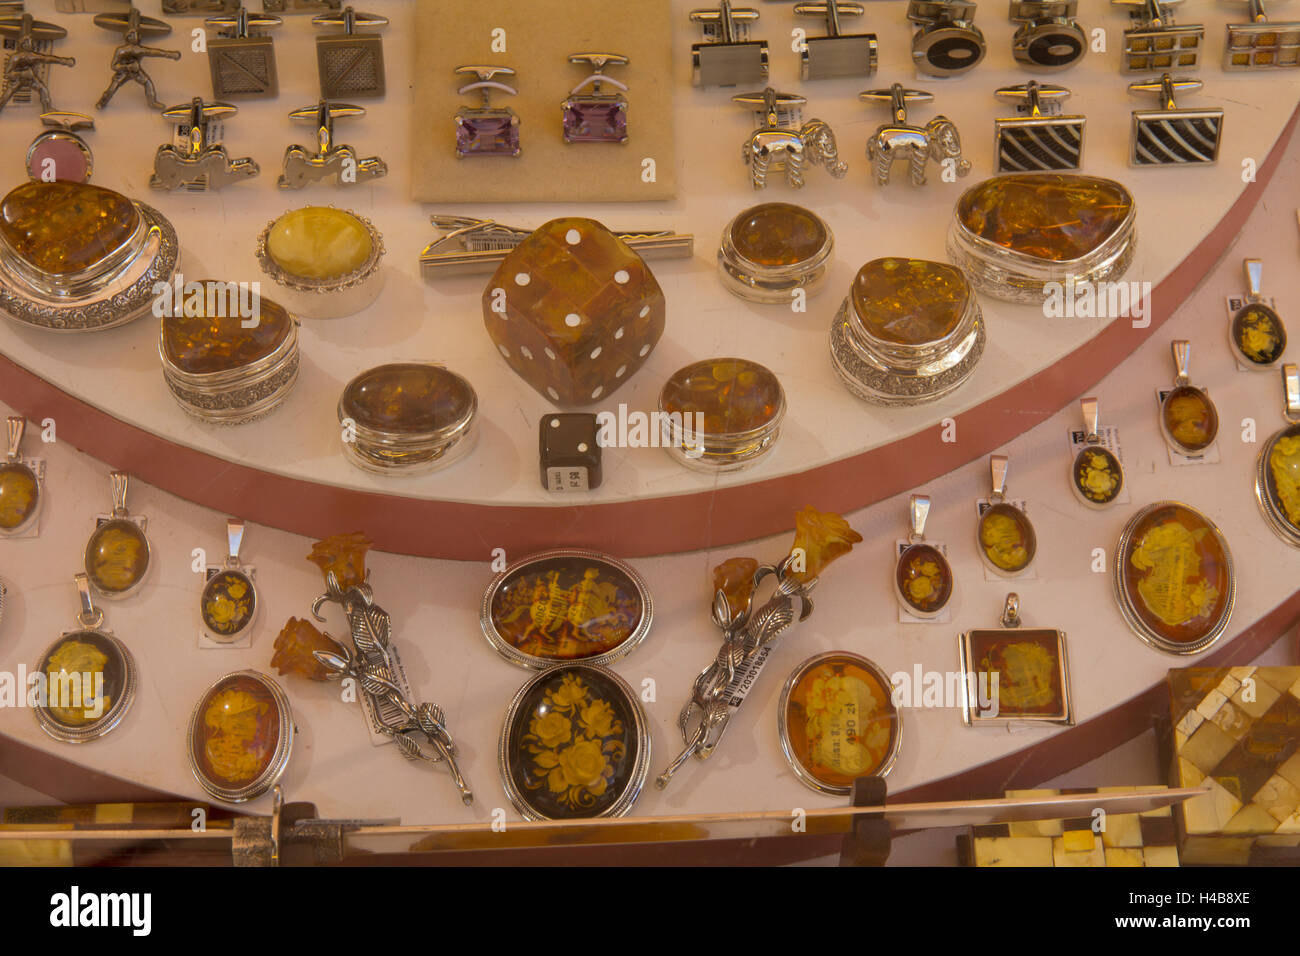 Baltic Amber Jewelry Is On Display Everywhere In Old Town